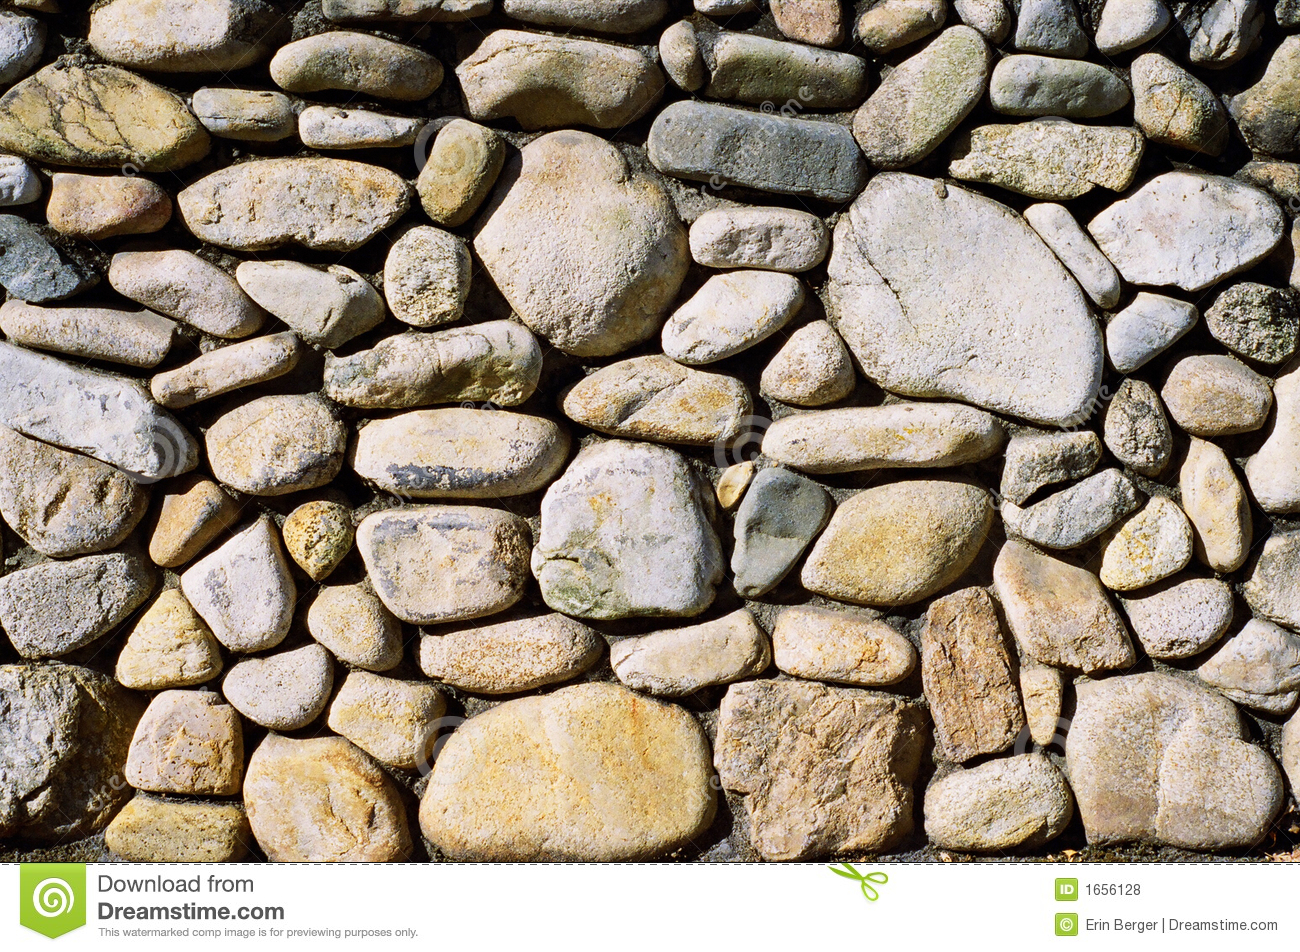 Free Images : rock, black and white, texture, floor ... |Cobblestone Wall